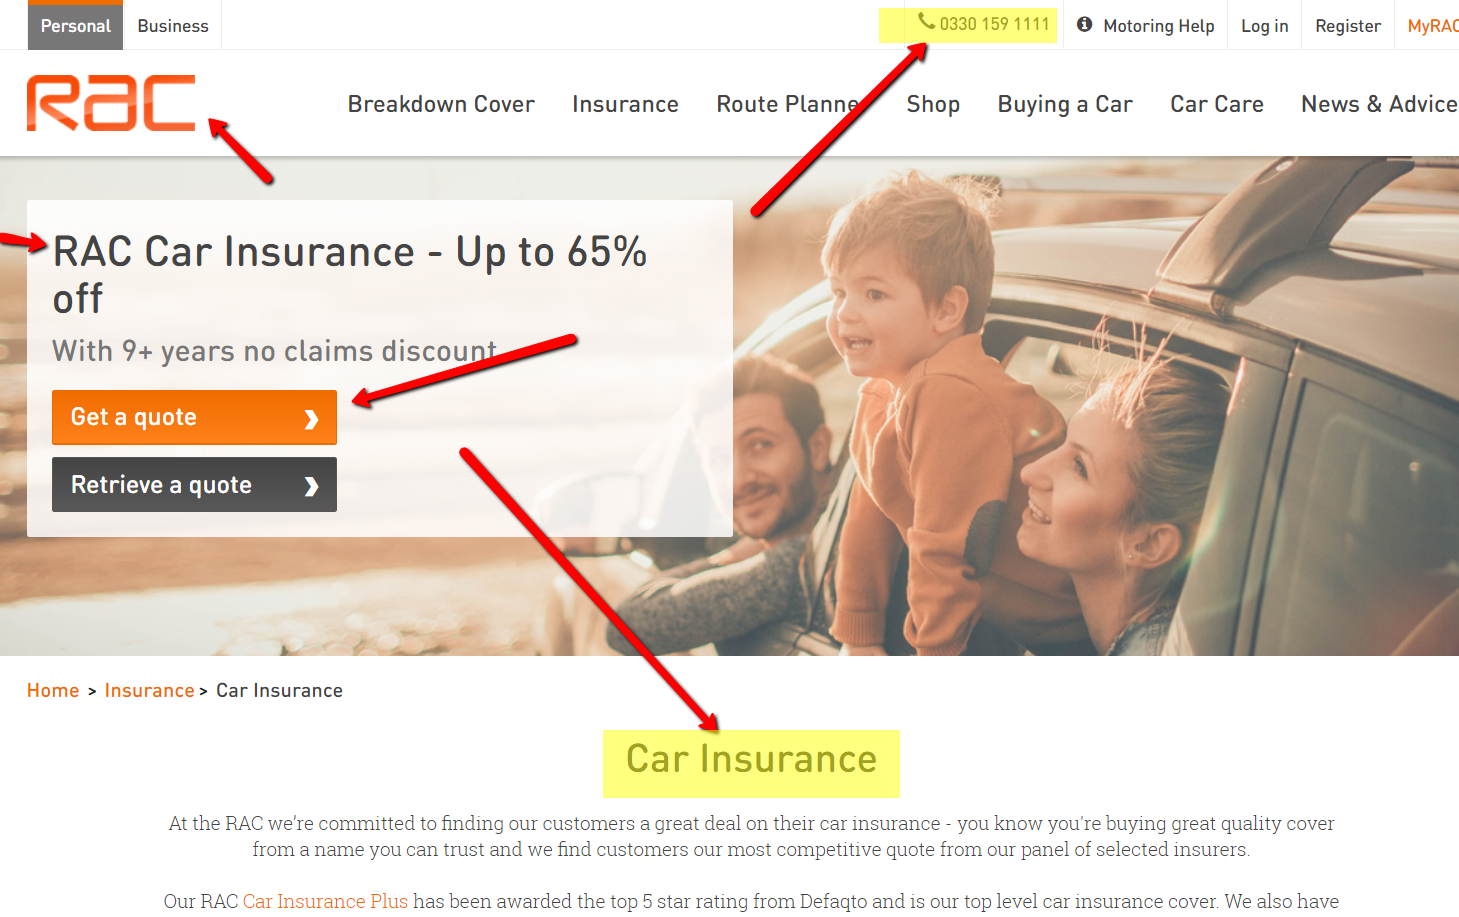 RAC Car Insurance and Family